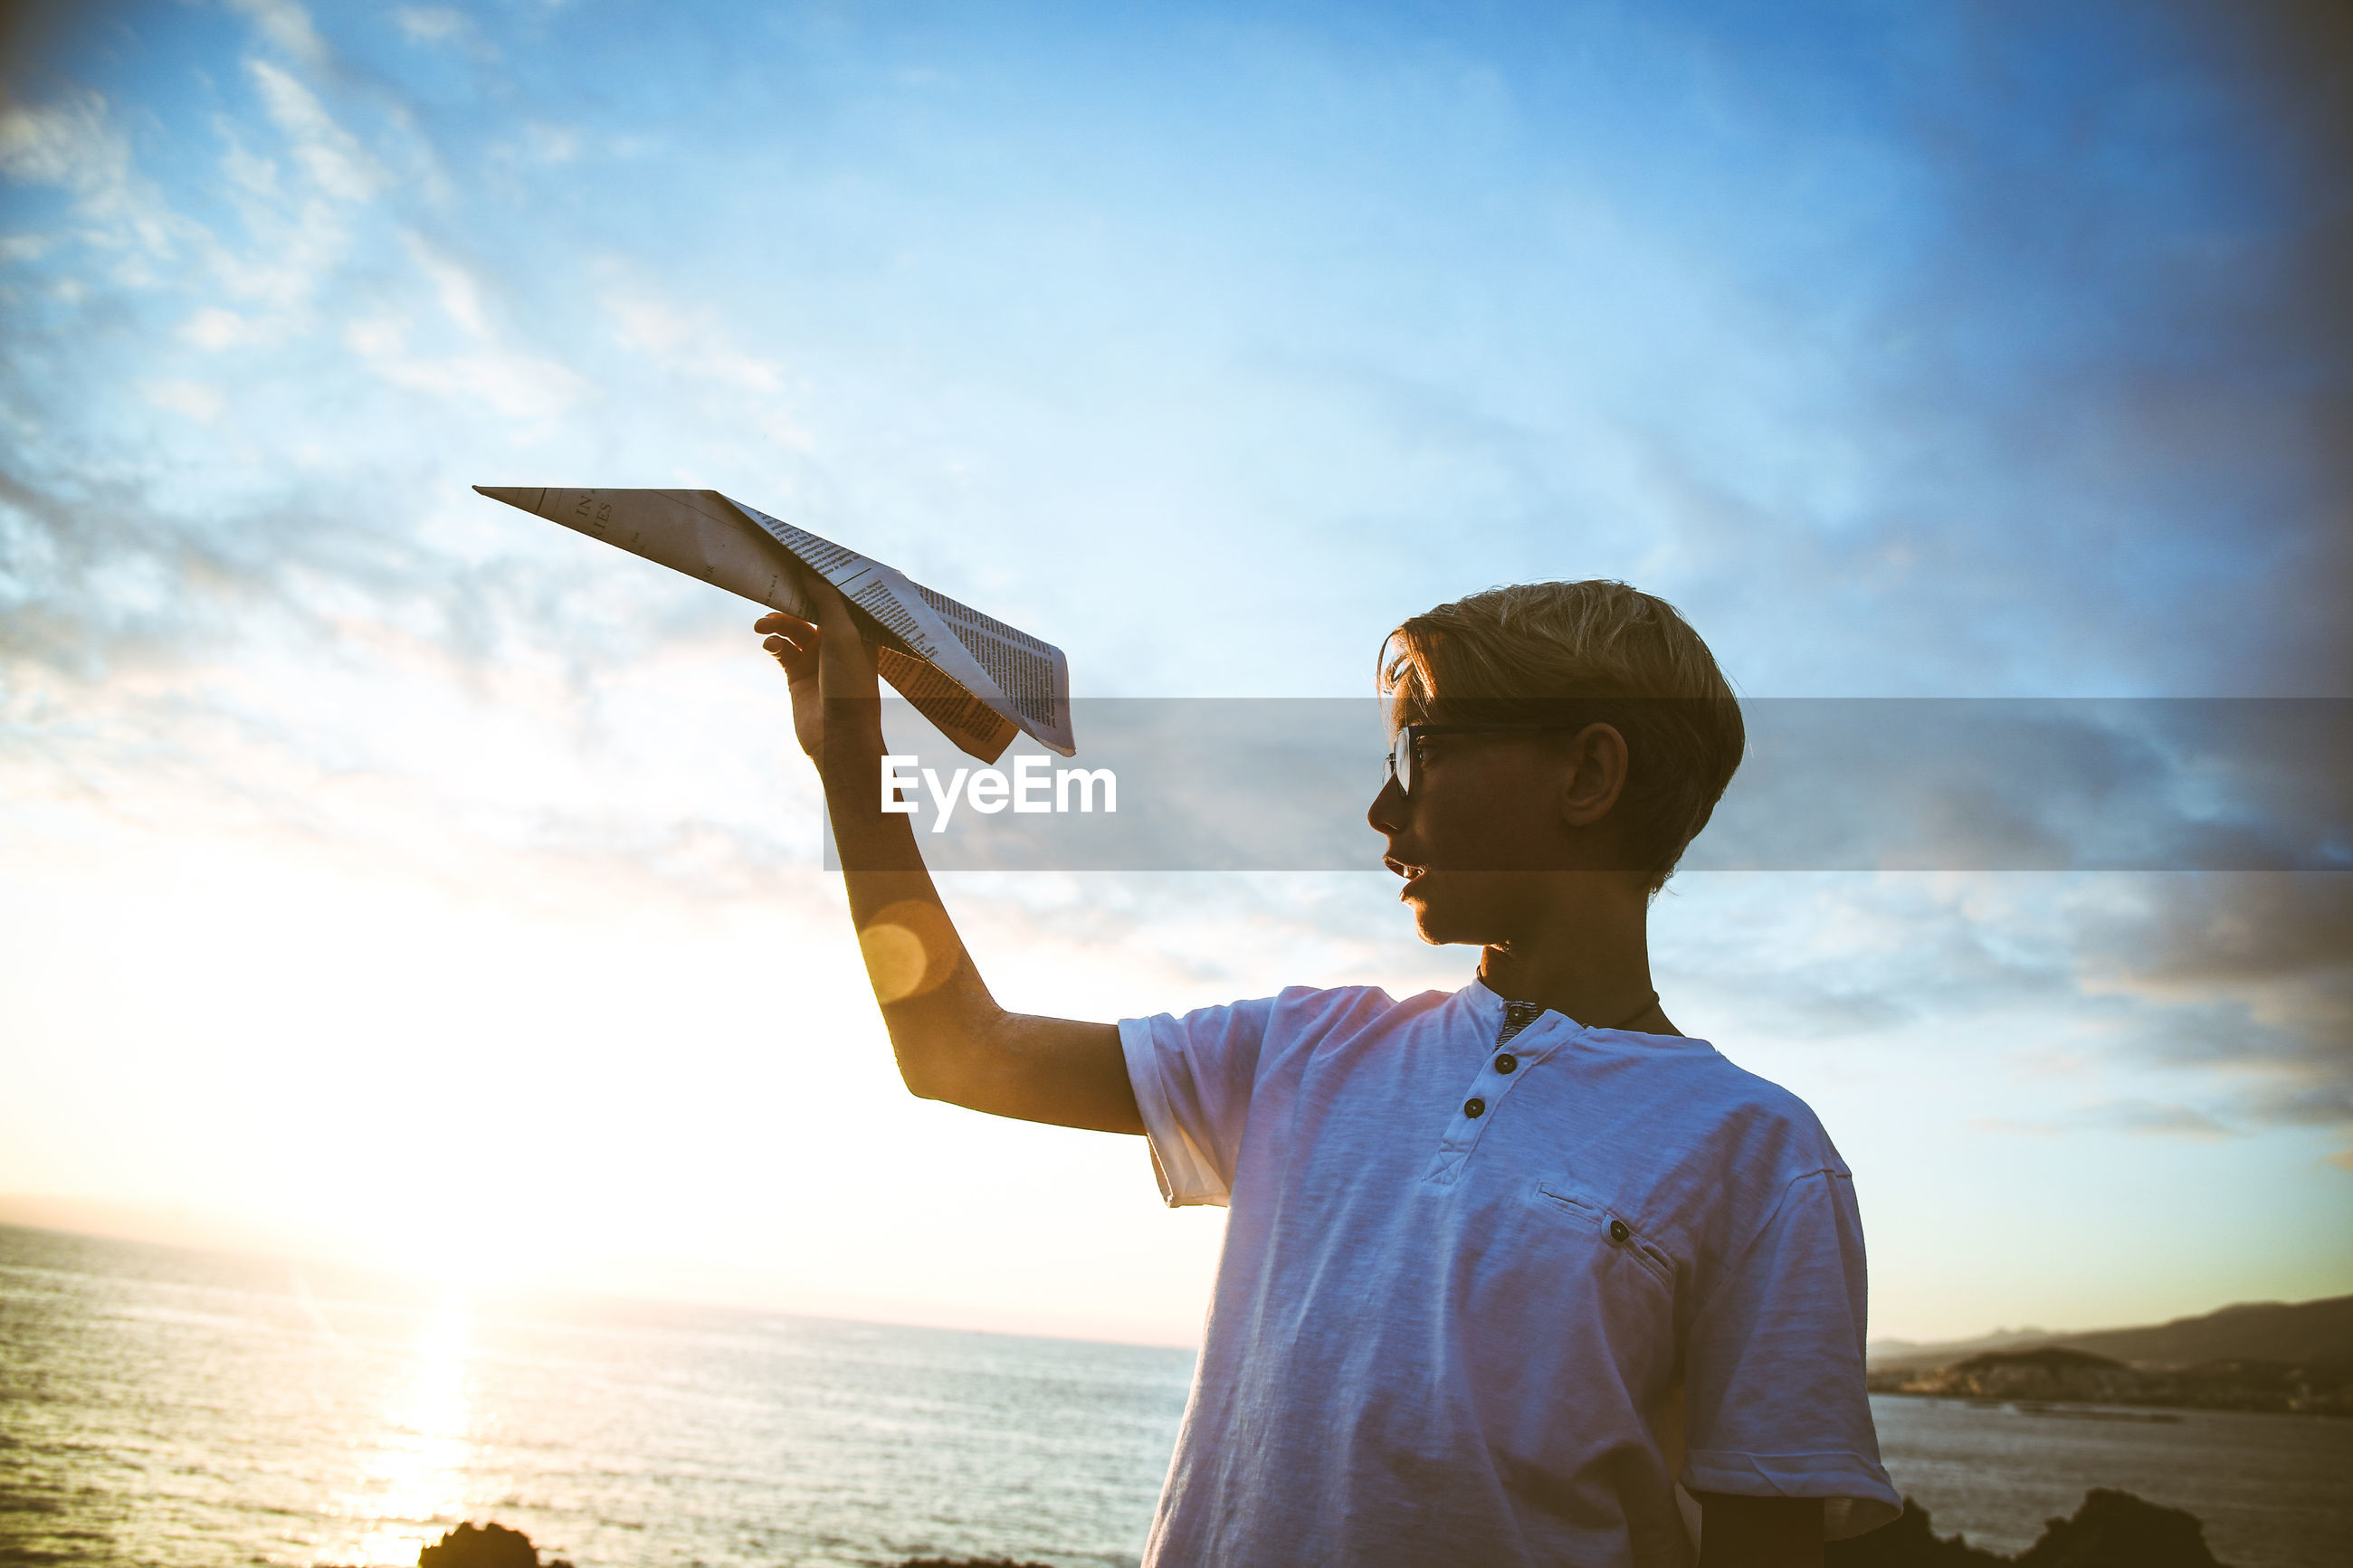 Low angle view of boy holding paper airplane against sky